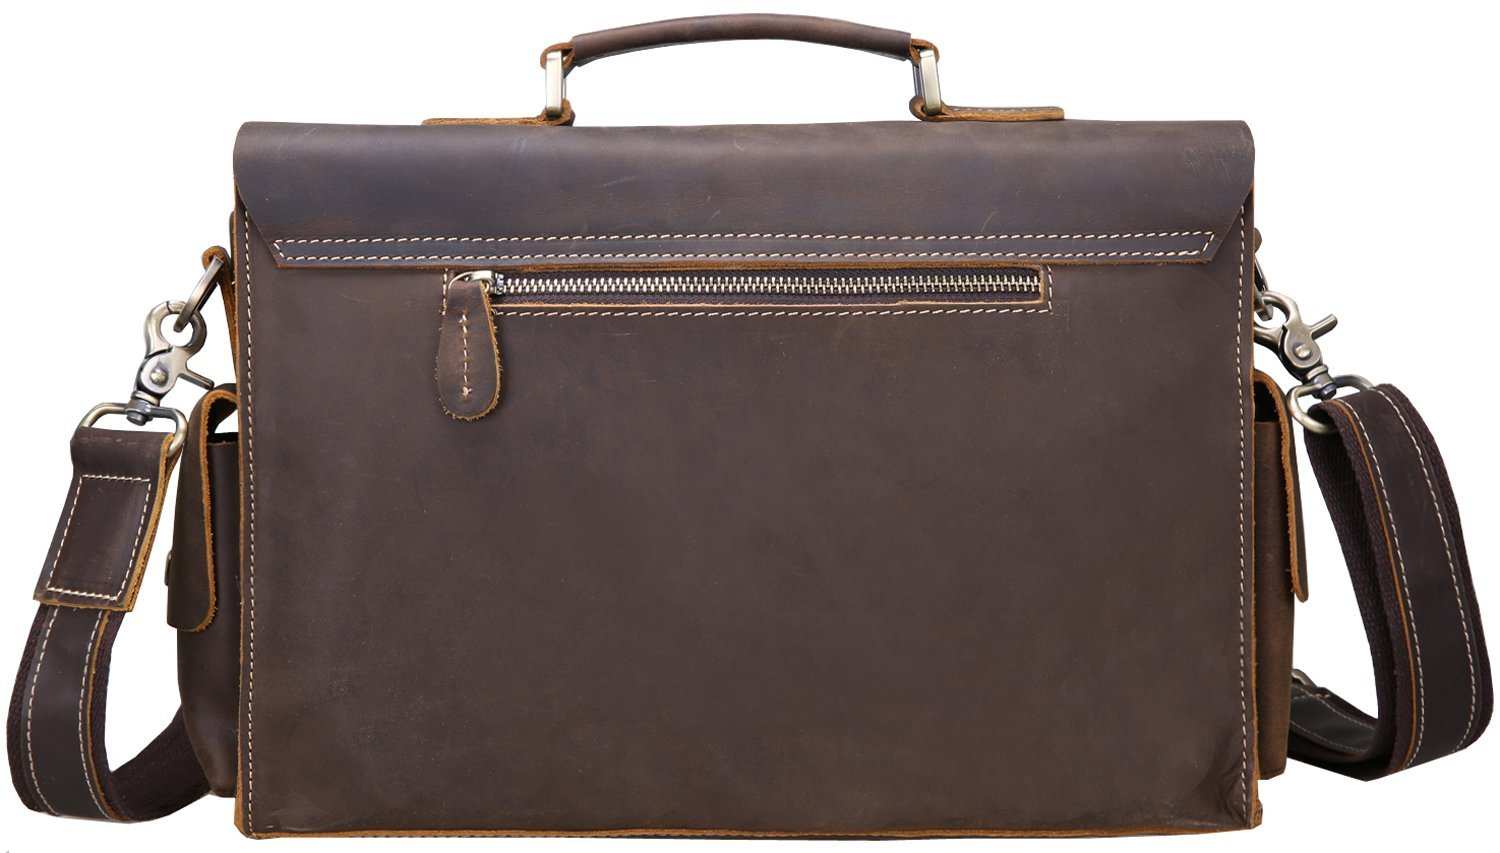 Iswee Vintage Leather Messenger Bag 13.3'' Laptop Briefcase Shoulder Bag for Men by Iswee (Image #3)